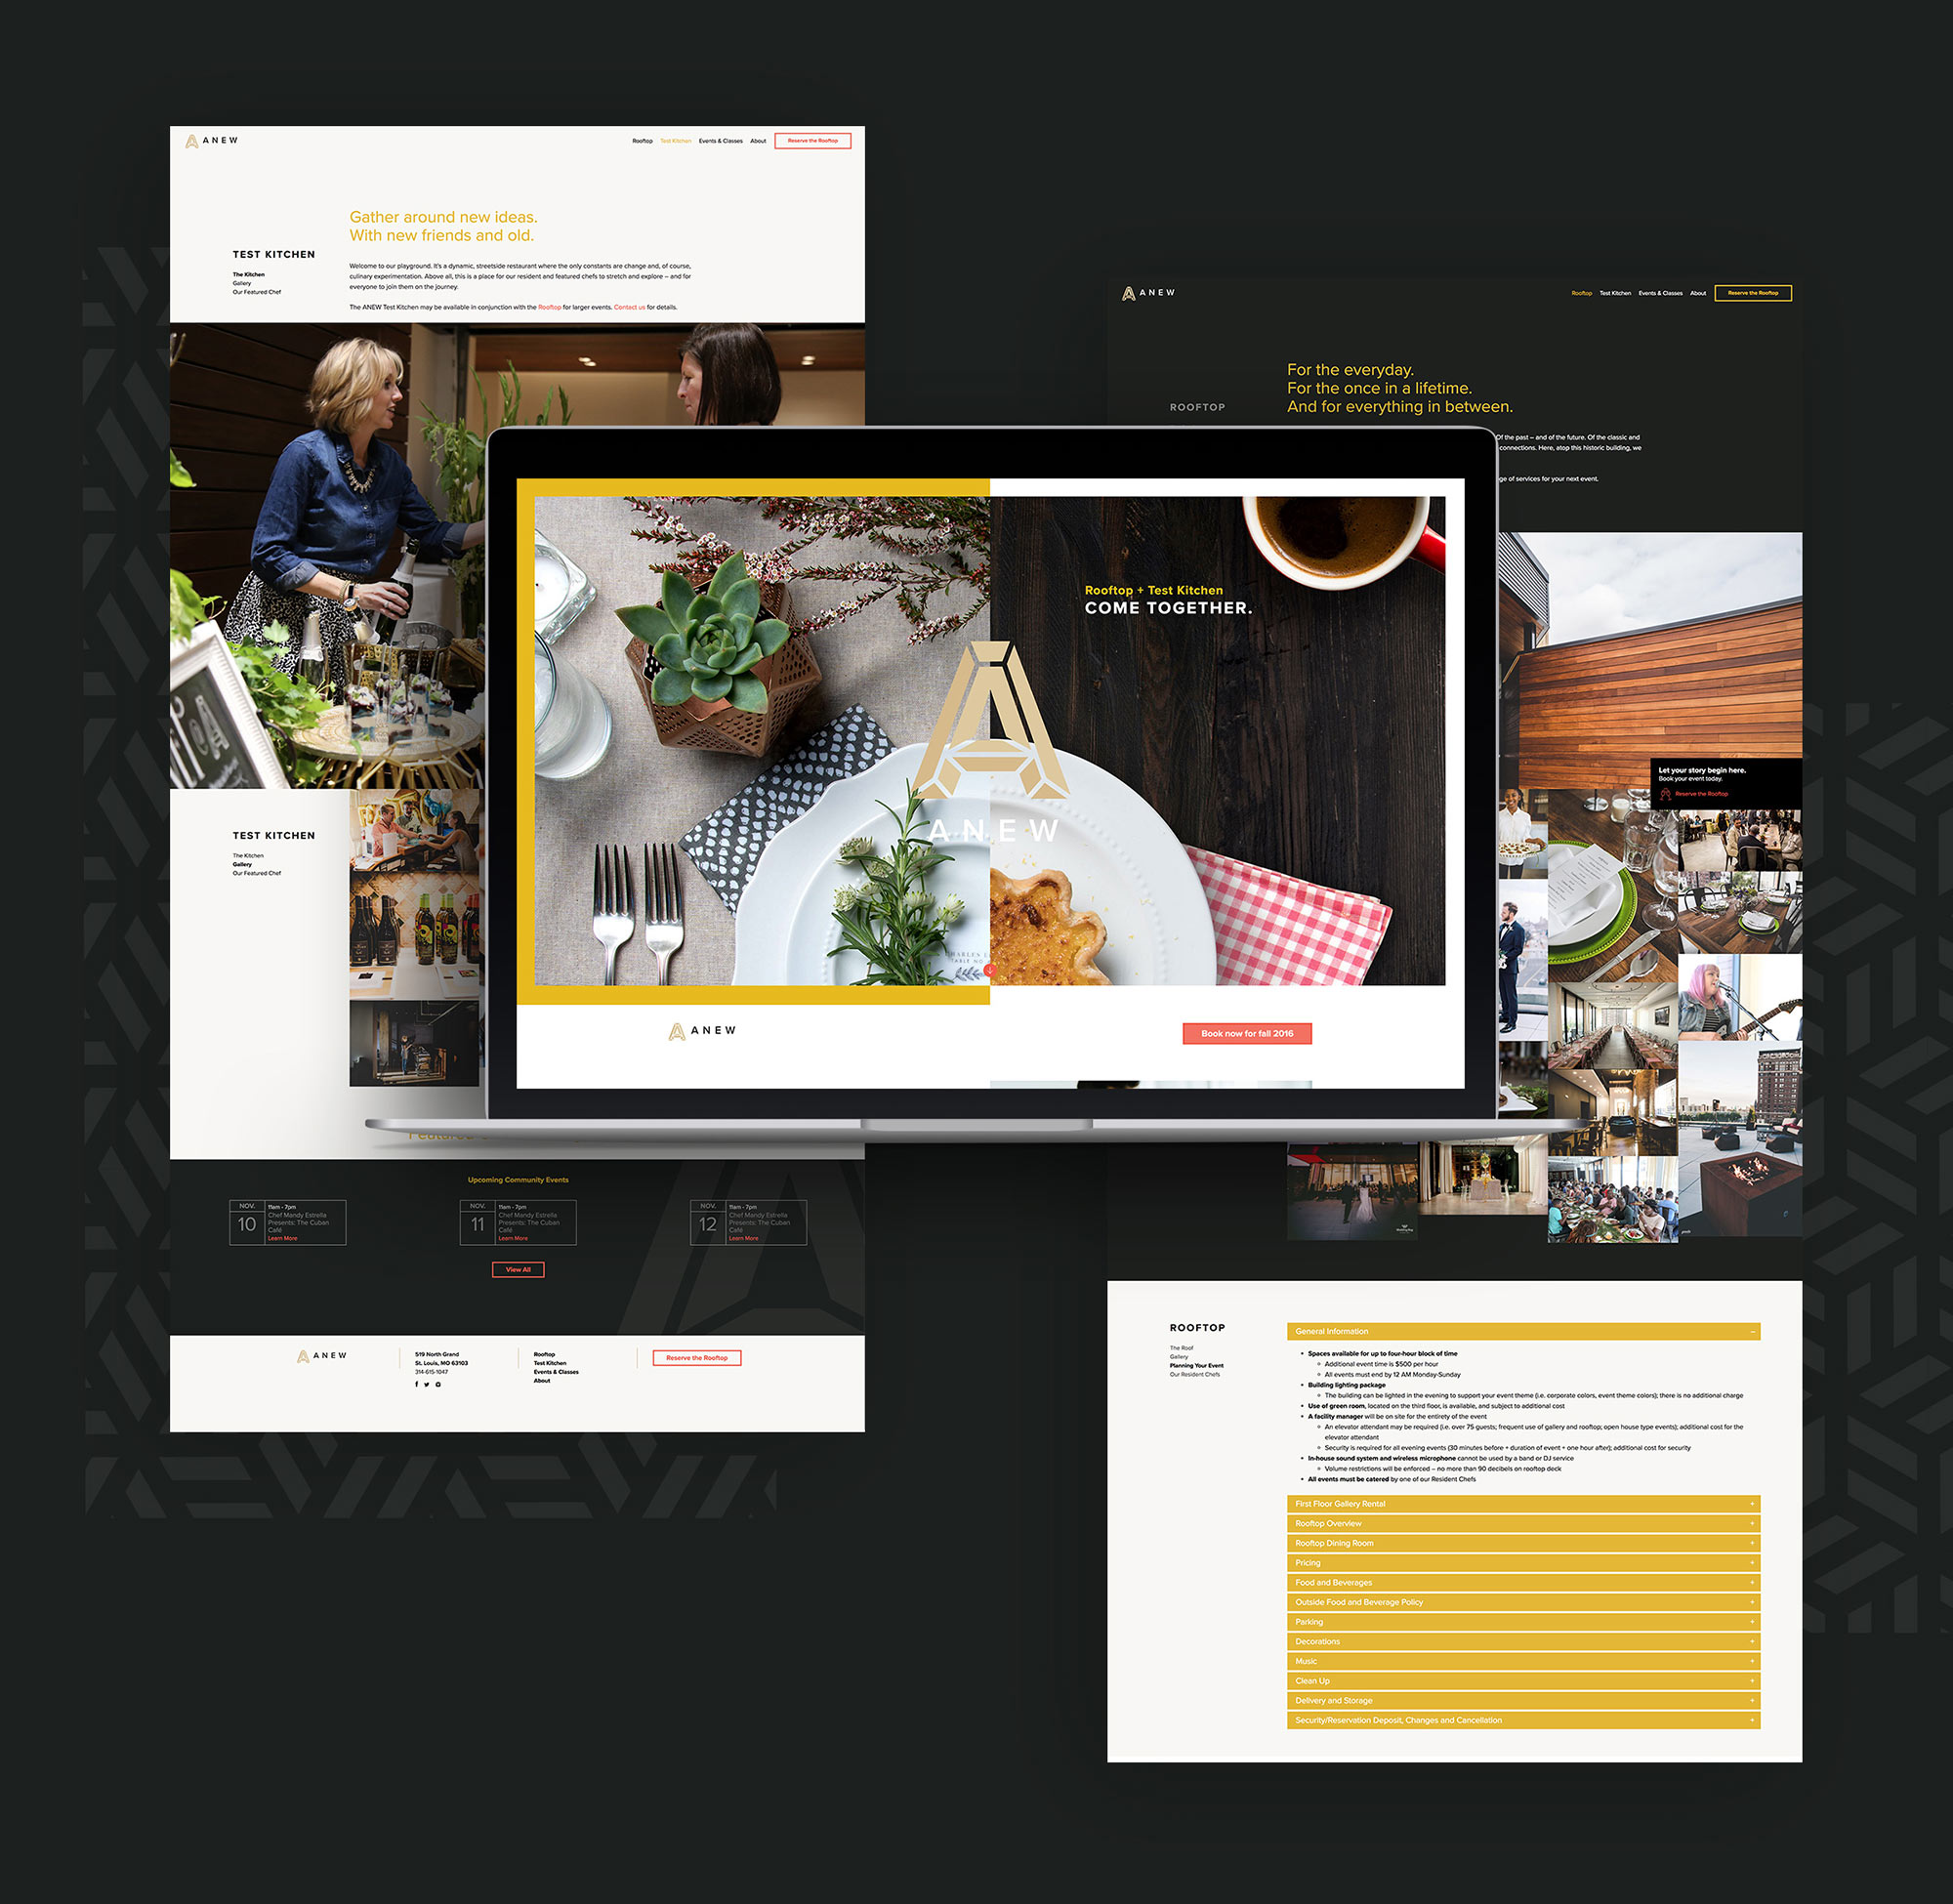 Website design for Anew St. Louis